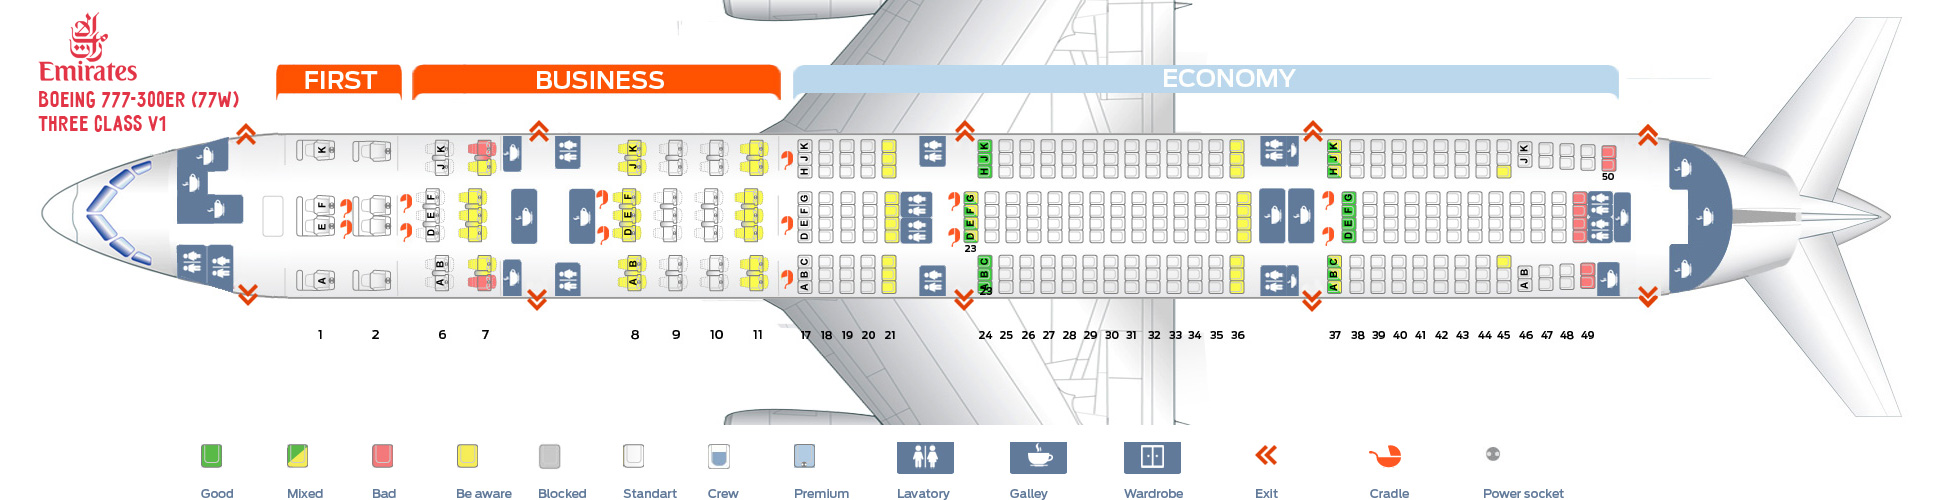 Boeing 777 300Er Seat Map Seat map Boeing 777 300 Emirates. Best seats in the plane Boeing 777 300Er Seat Map